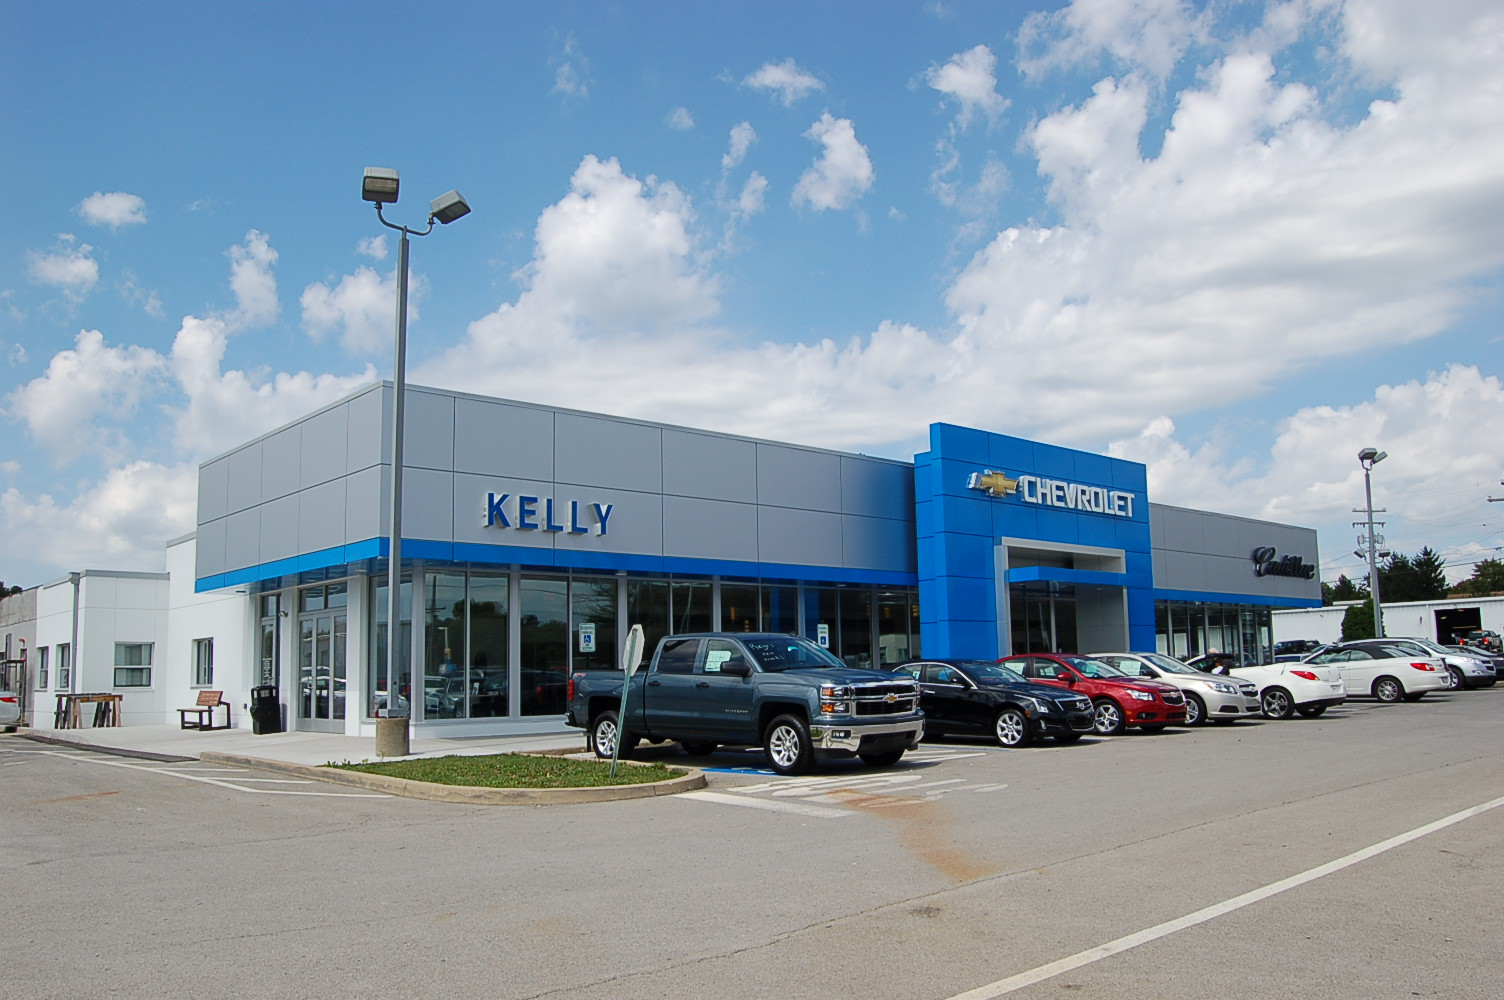 Kelly Chevrolet & Cadillac, Butler, PA (AFTER)